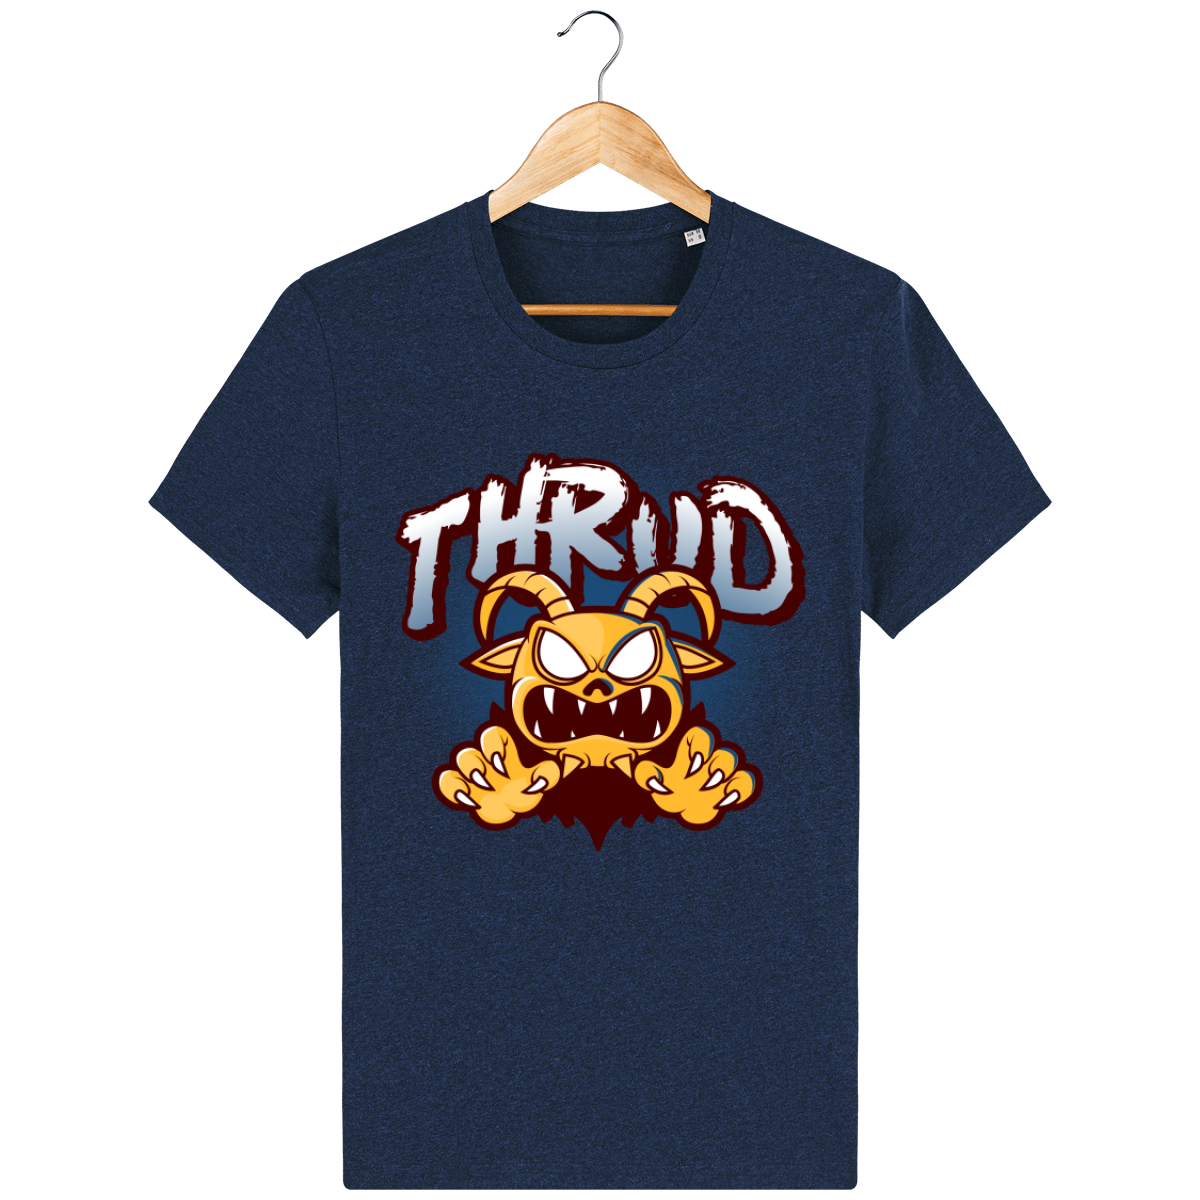 Thrud Monster - T-Shirt